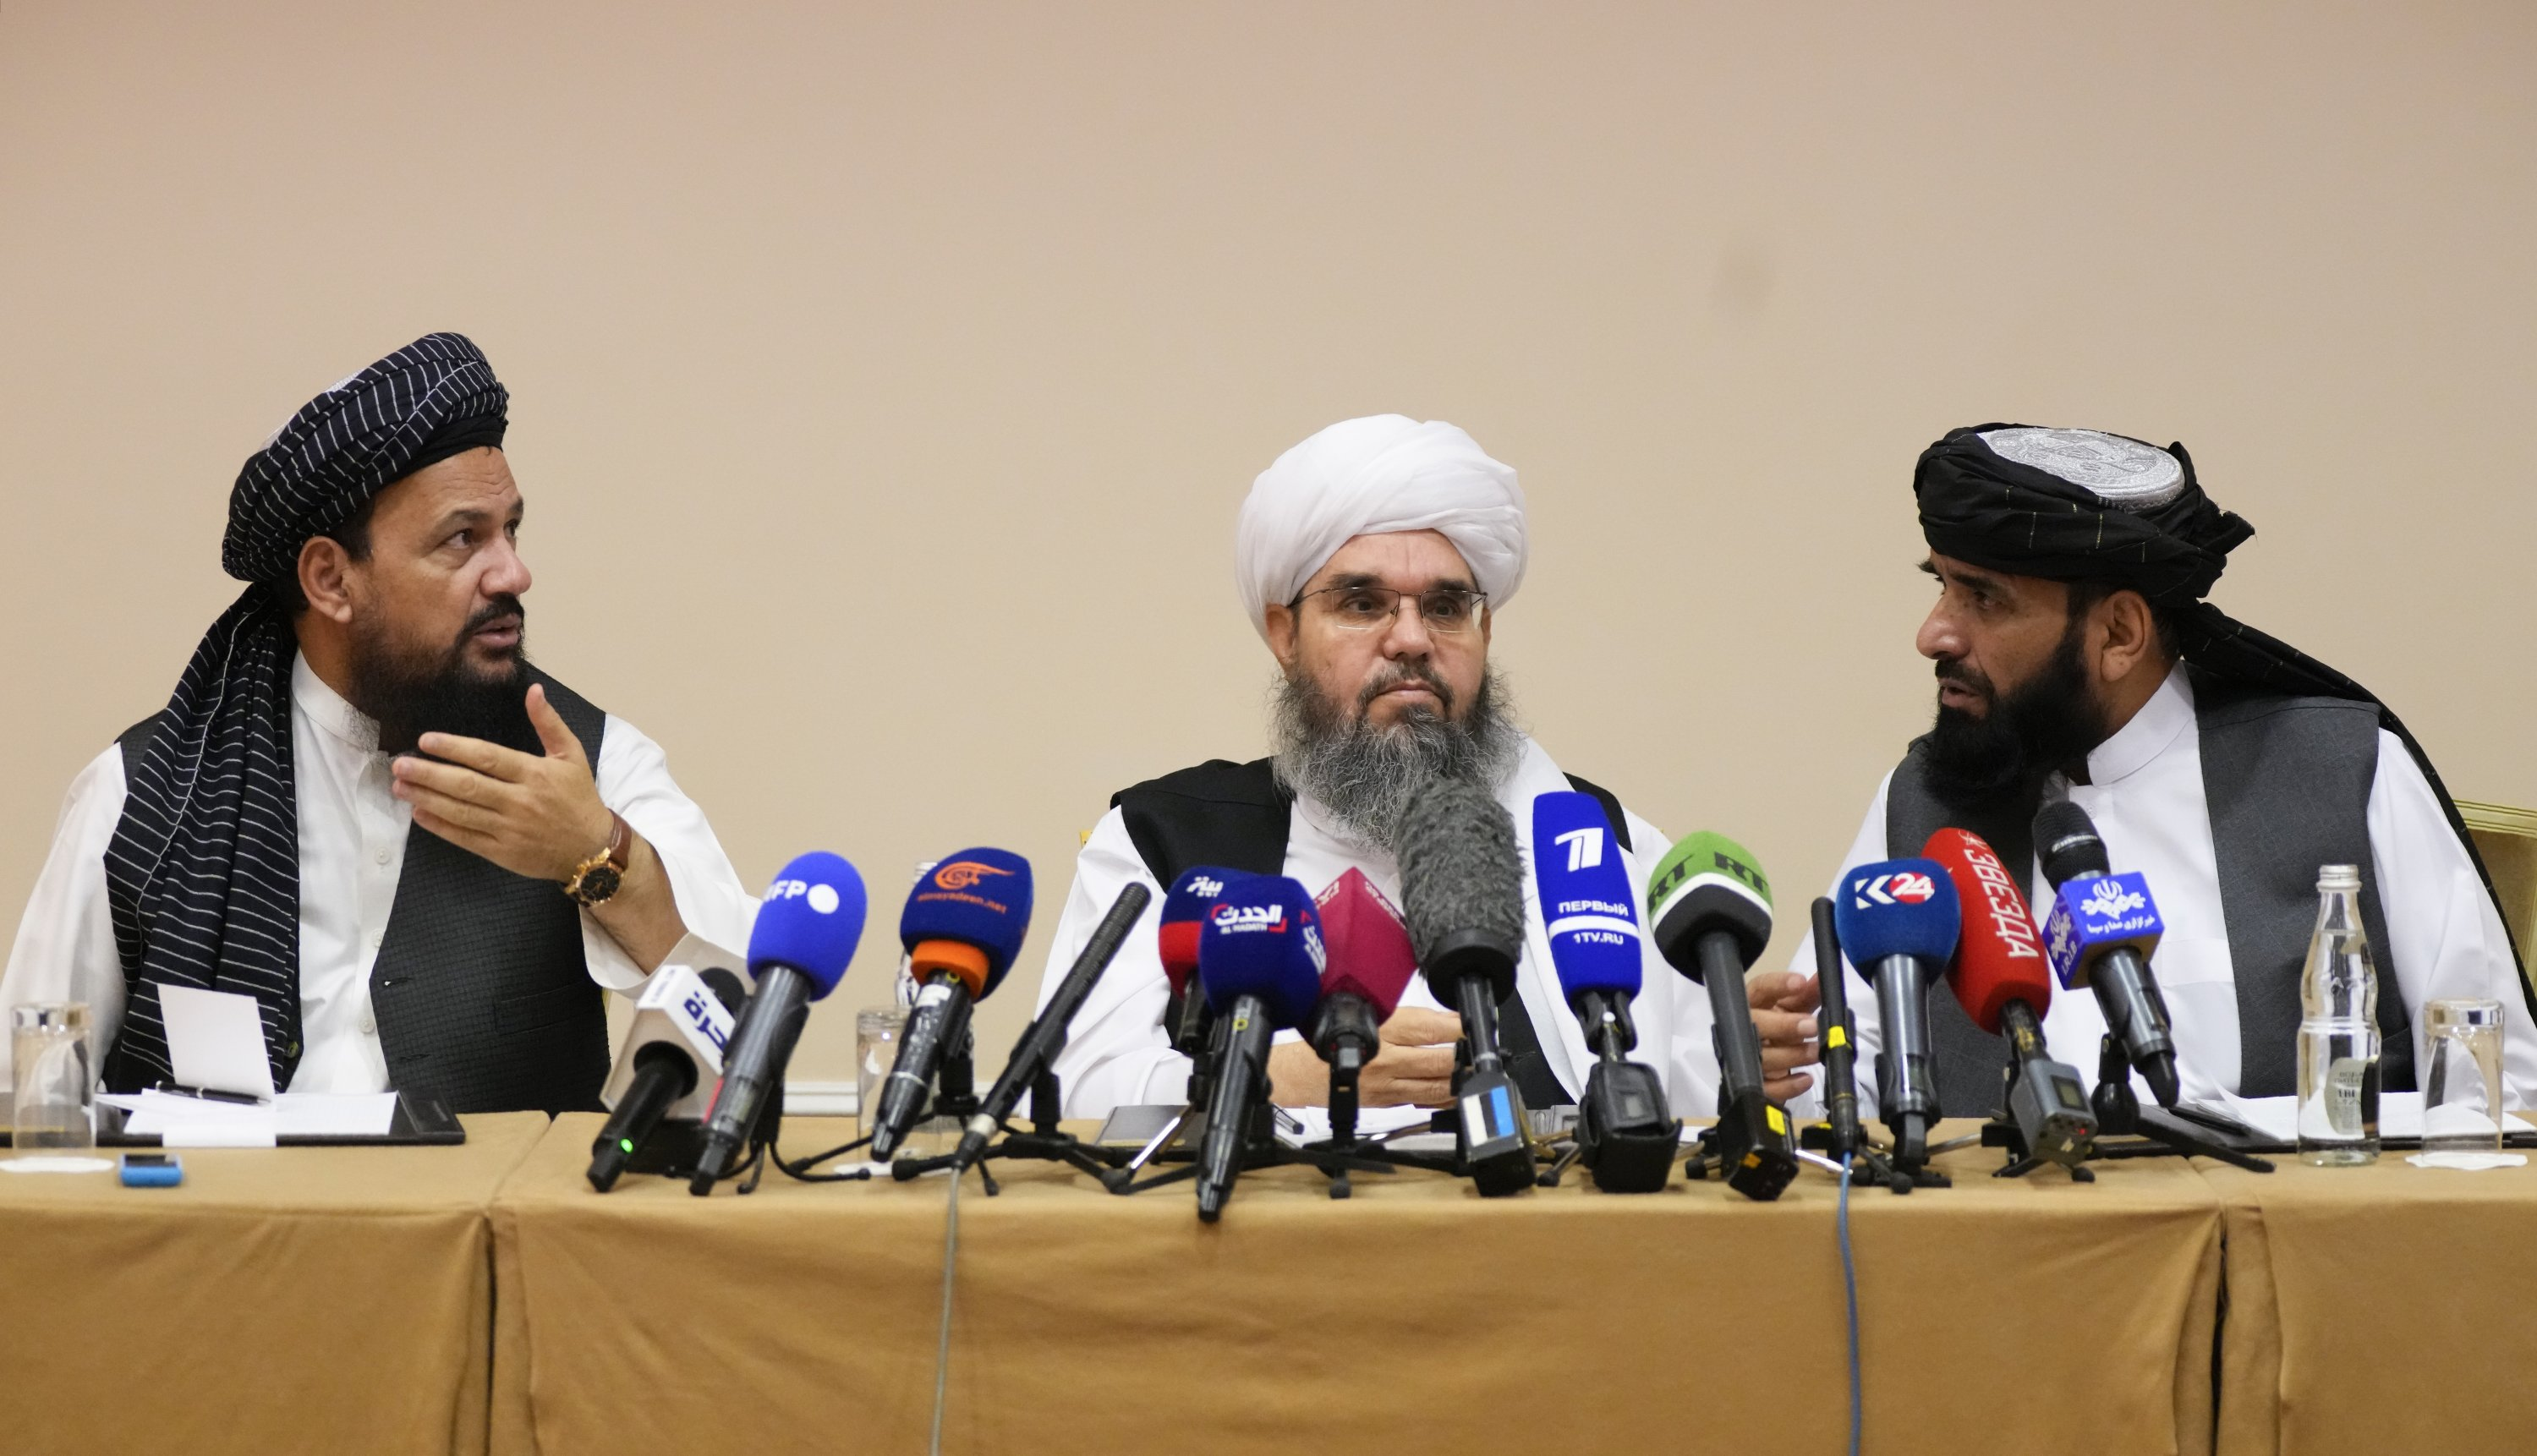 From left, Mohammad Naim, Mawlawi Shahabuddin Dilawar and Suhil Shaheen, members of a political delegation from the Afghan Taliban's movement, attend a news conference in Moscow, Russia, July 9, 2021. (AP Photo)